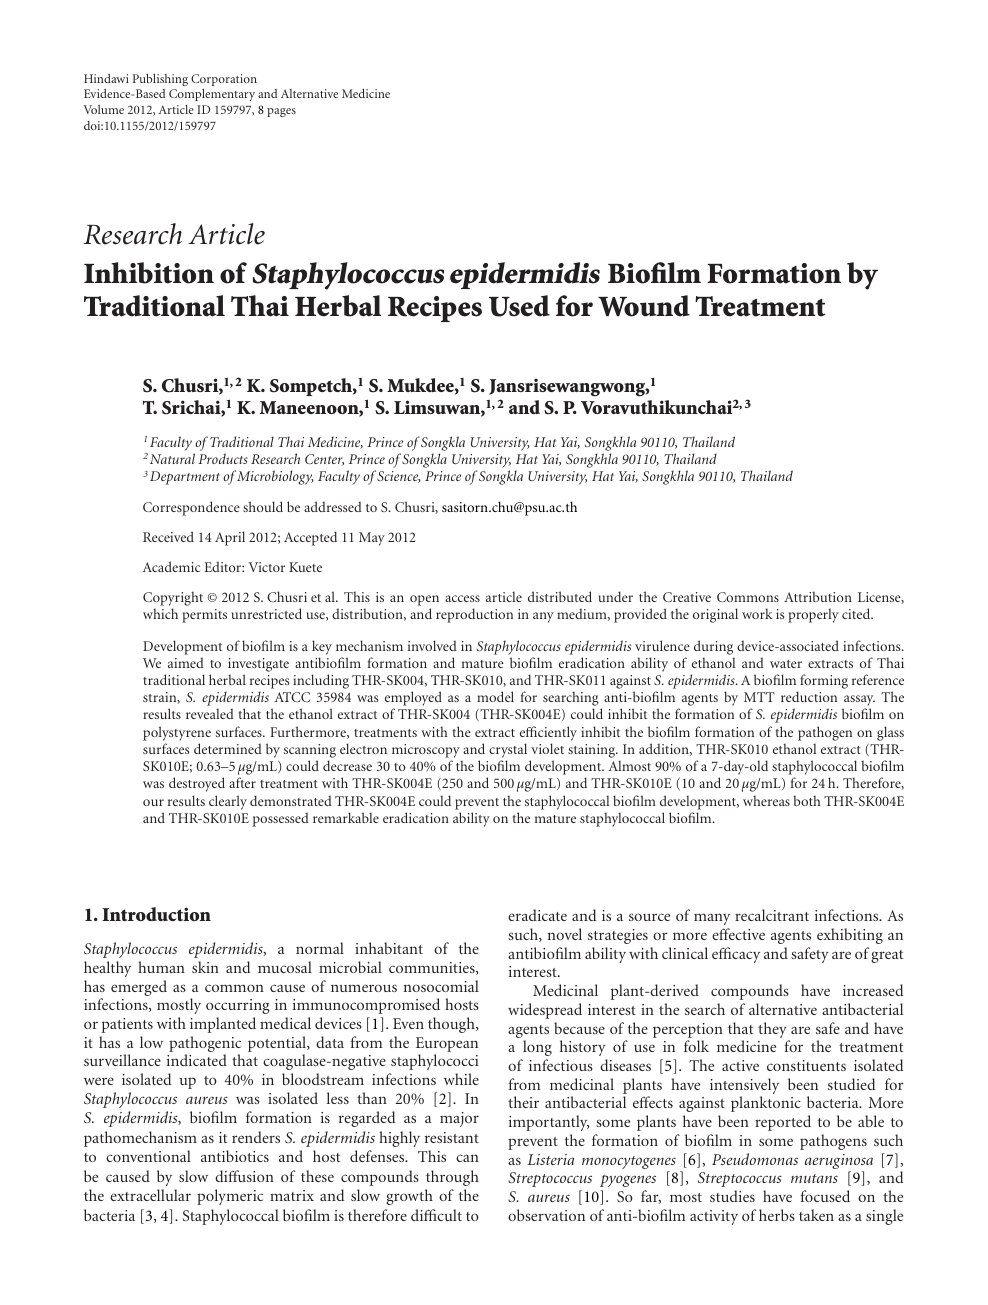 Inhibition of Staphylococcus epidermidis Biofilm Formation by